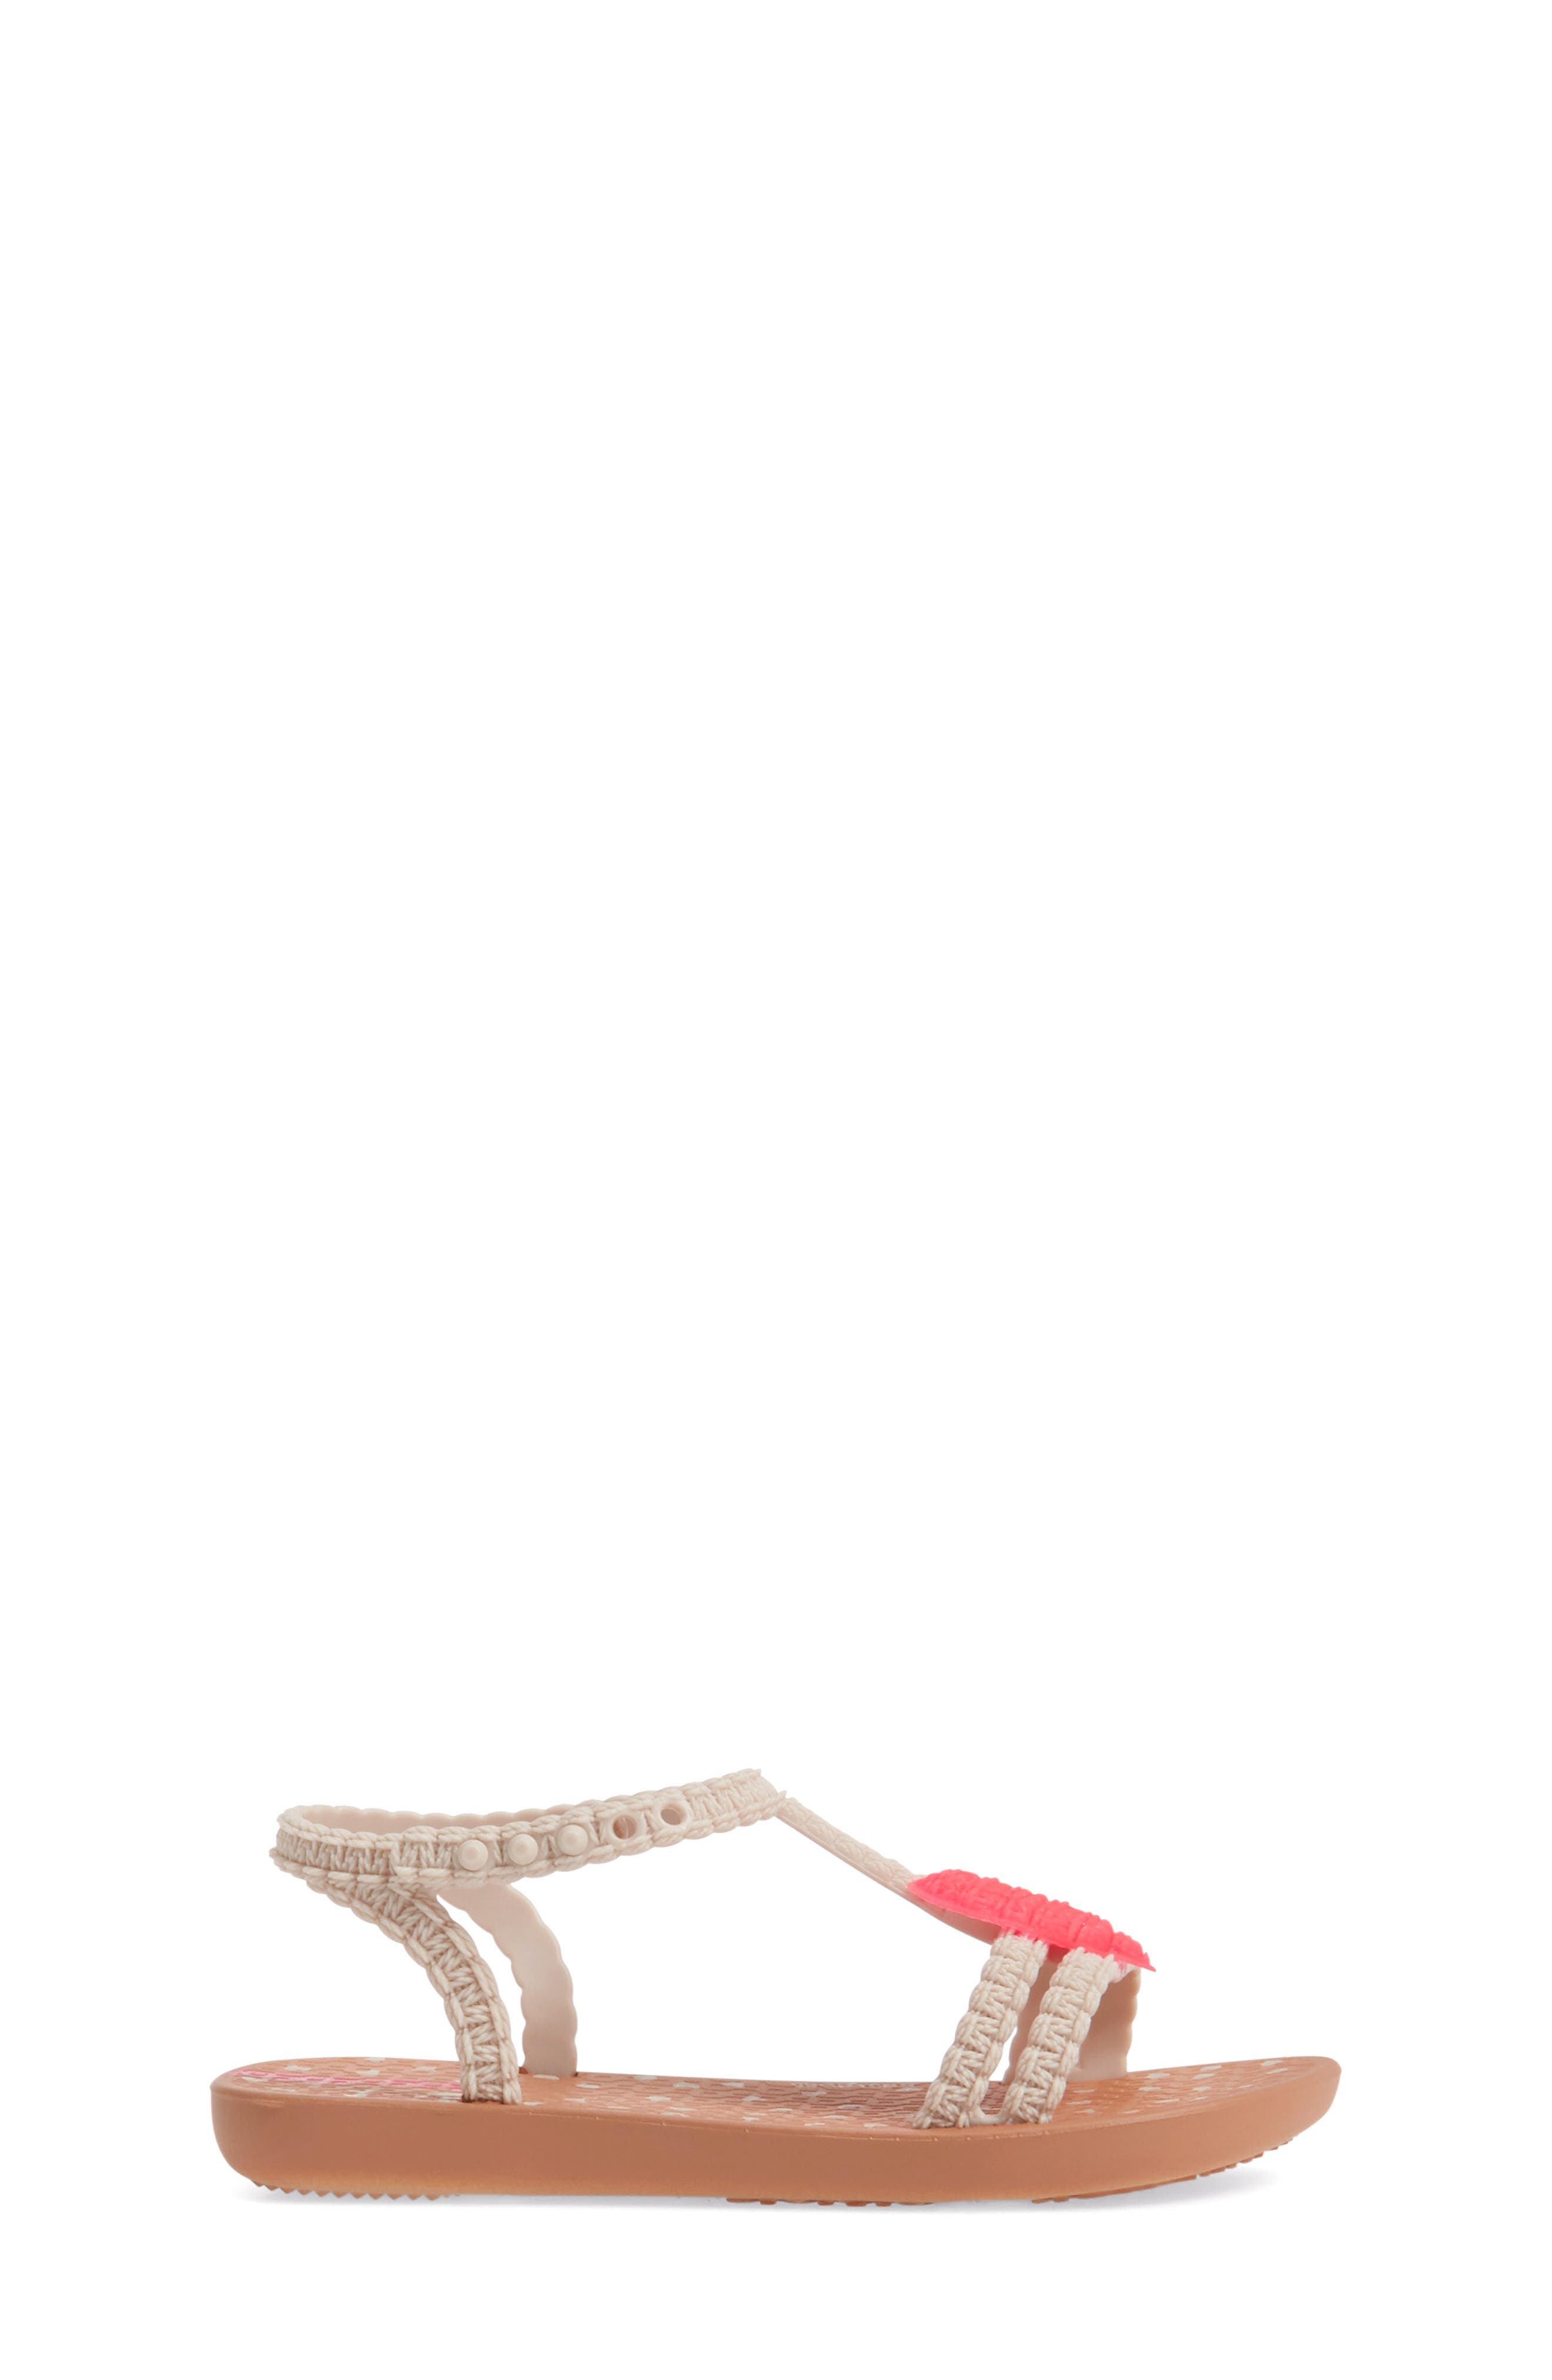 My First Ipanema Sandal,                             Alternate thumbnail 3, color,                             Brown/ Pink